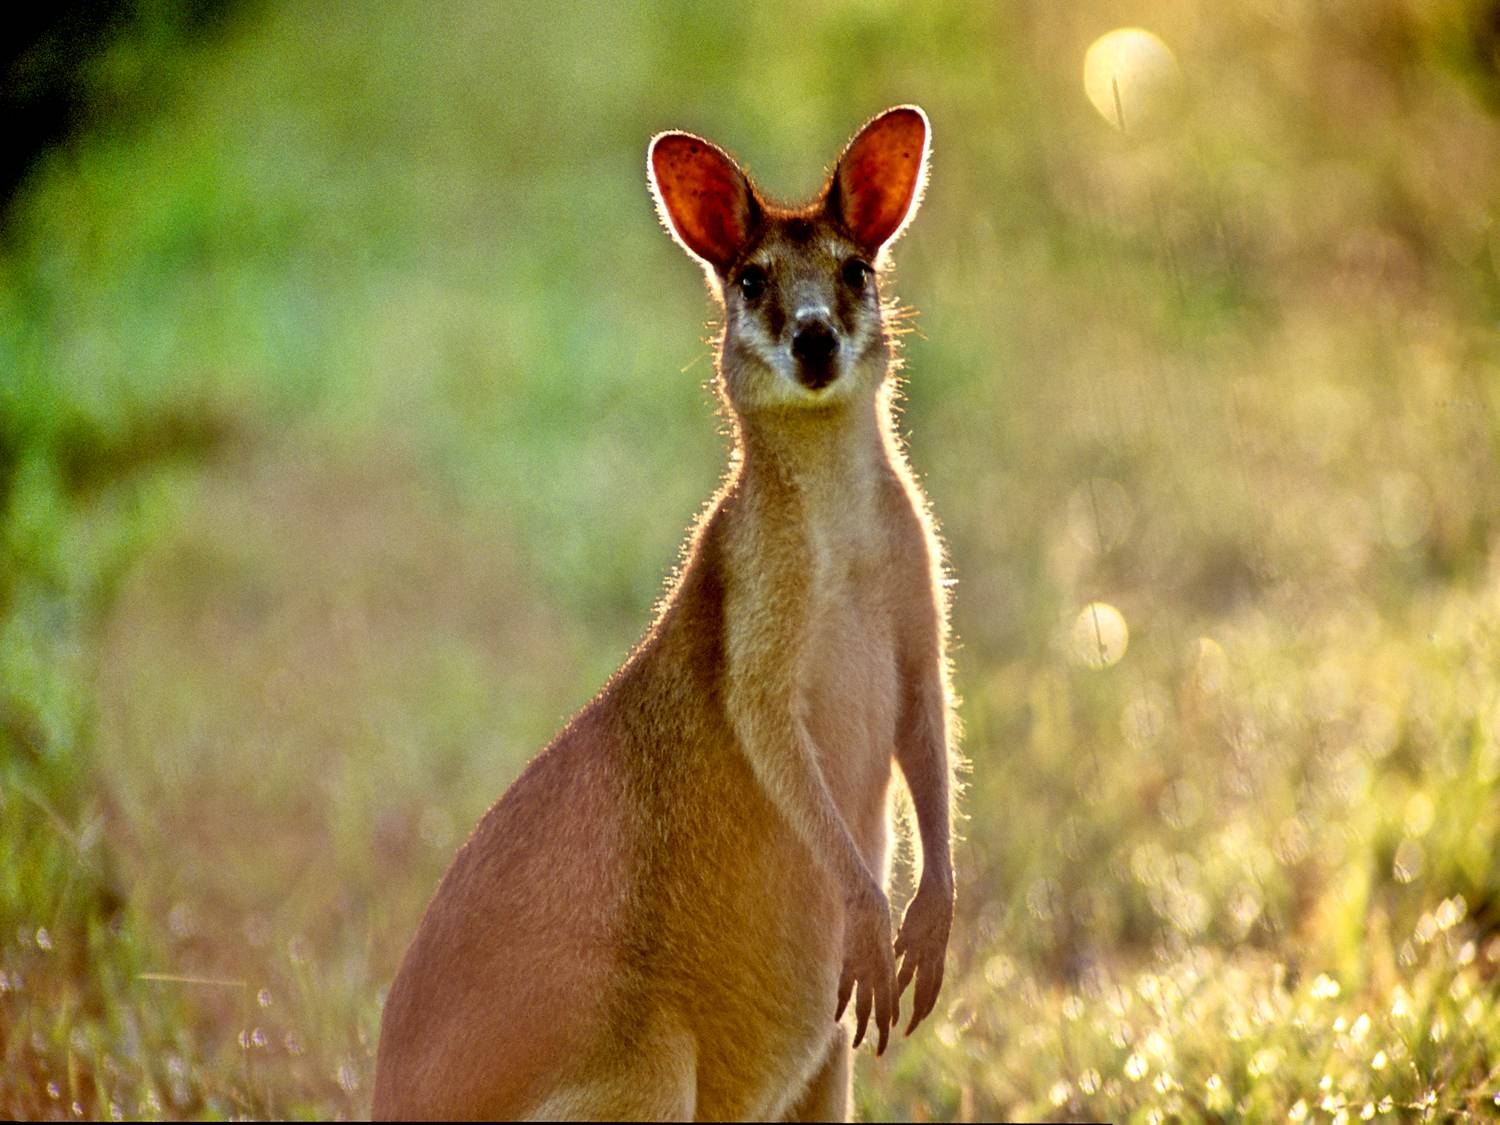 image of a wallaby